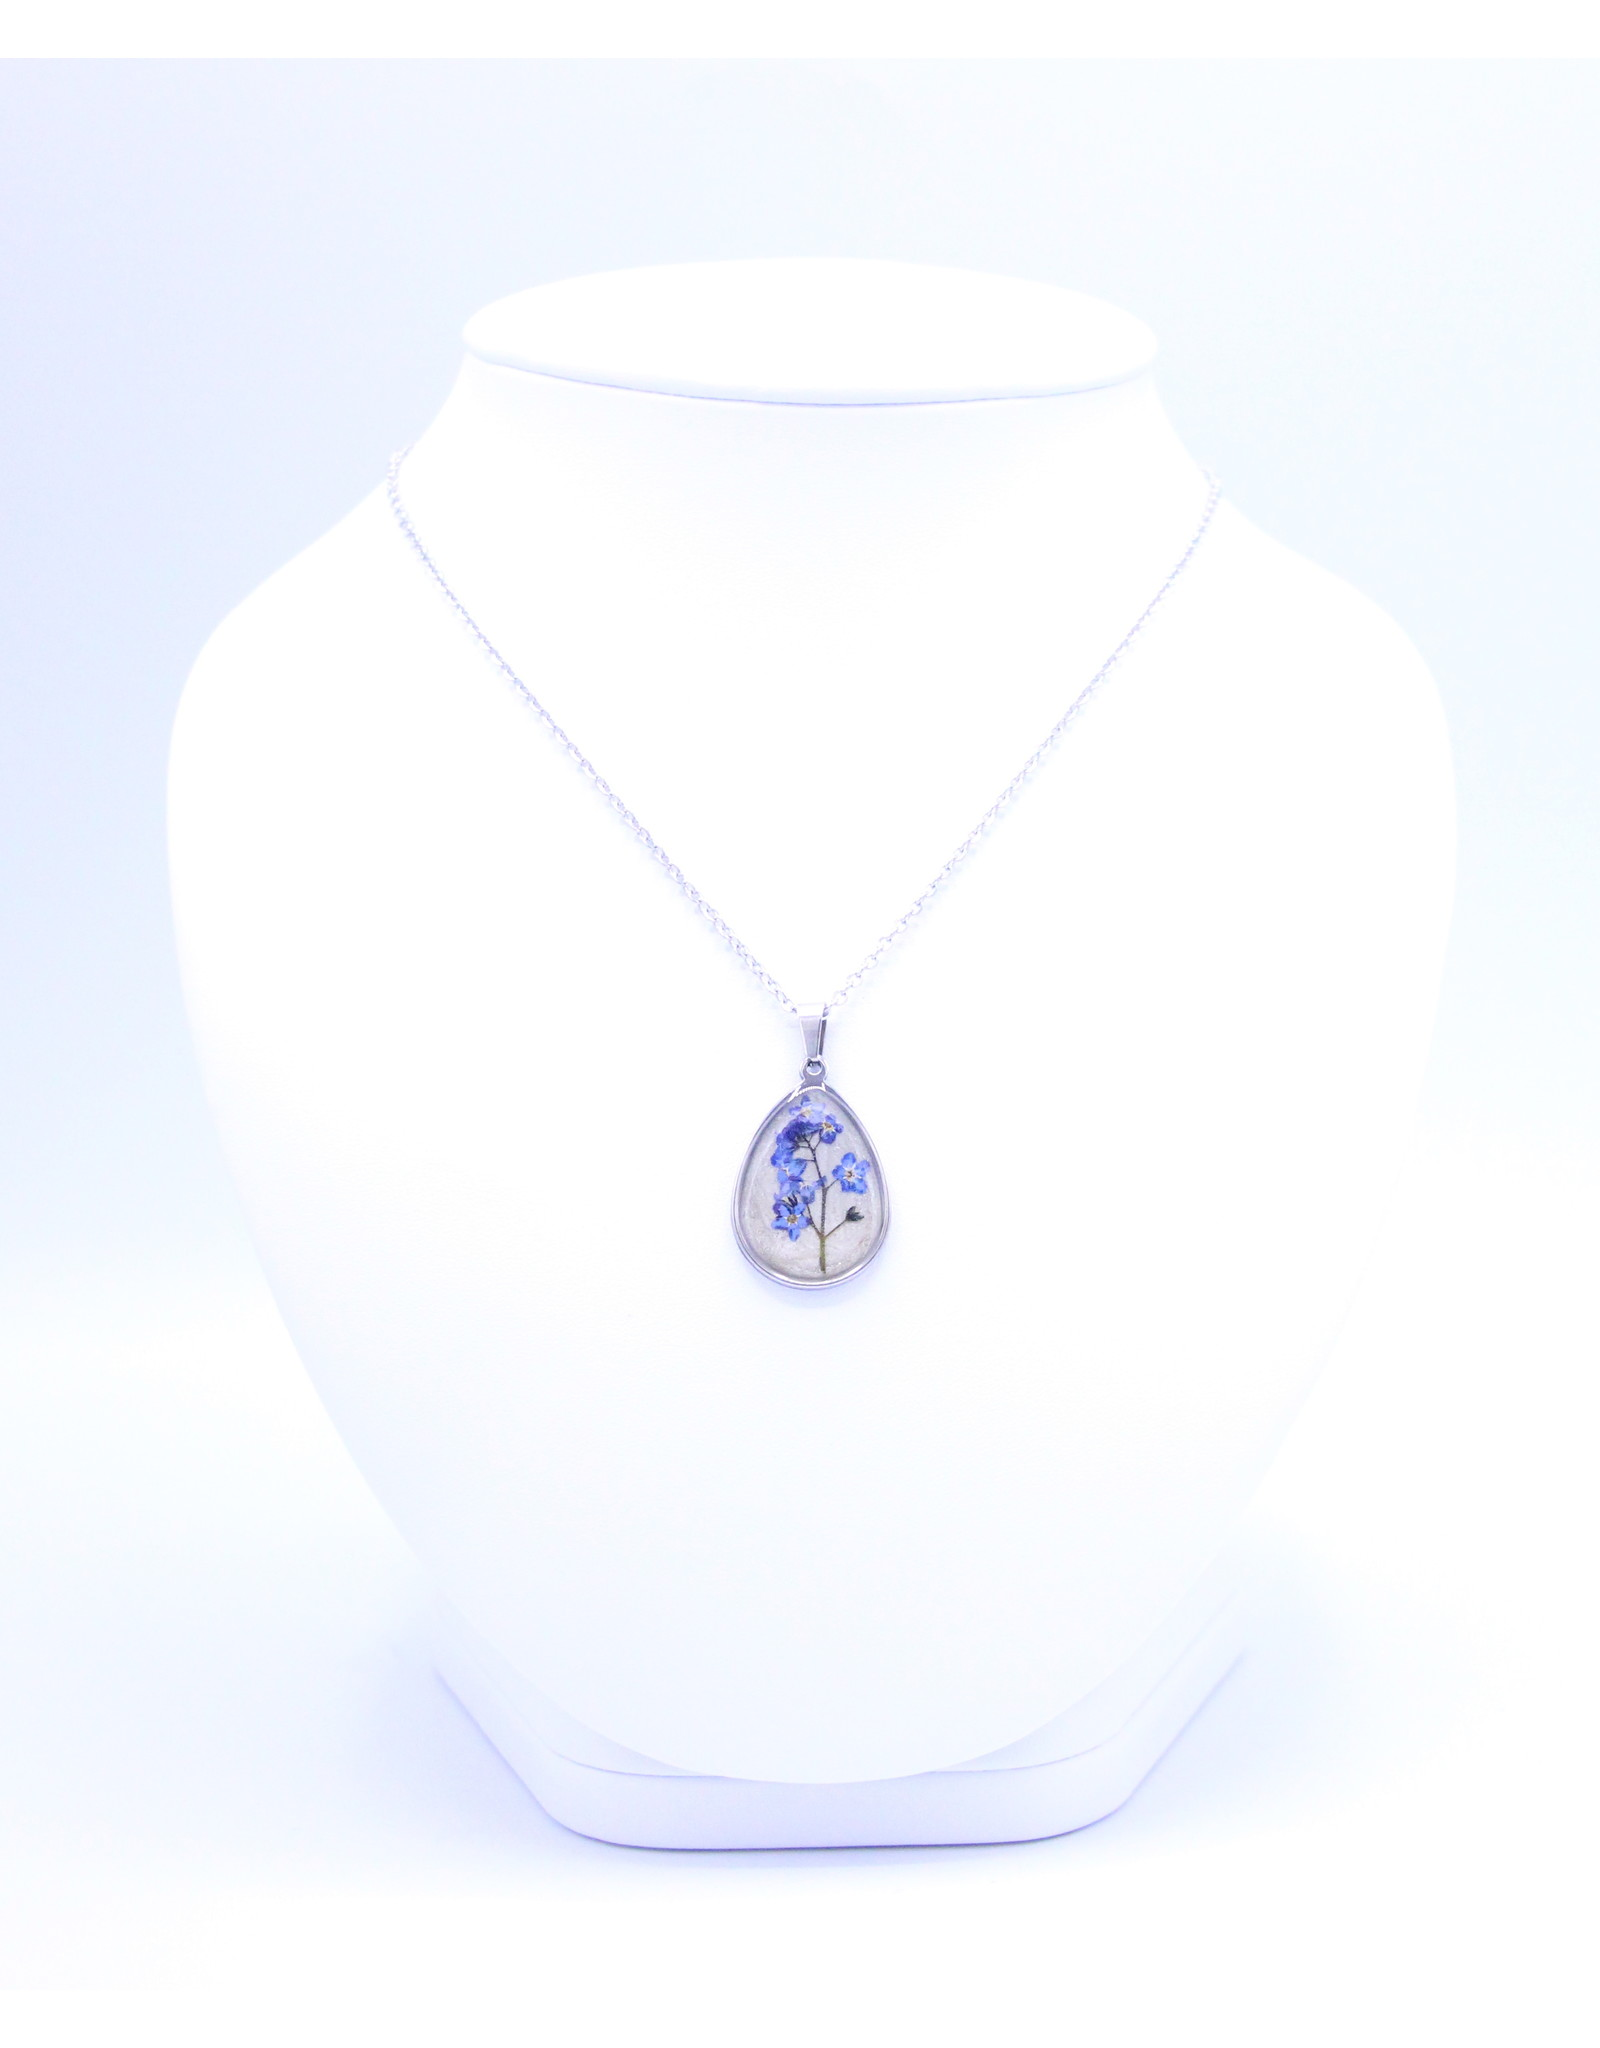 25mm Forget Me Not Necklace - N25FMN3